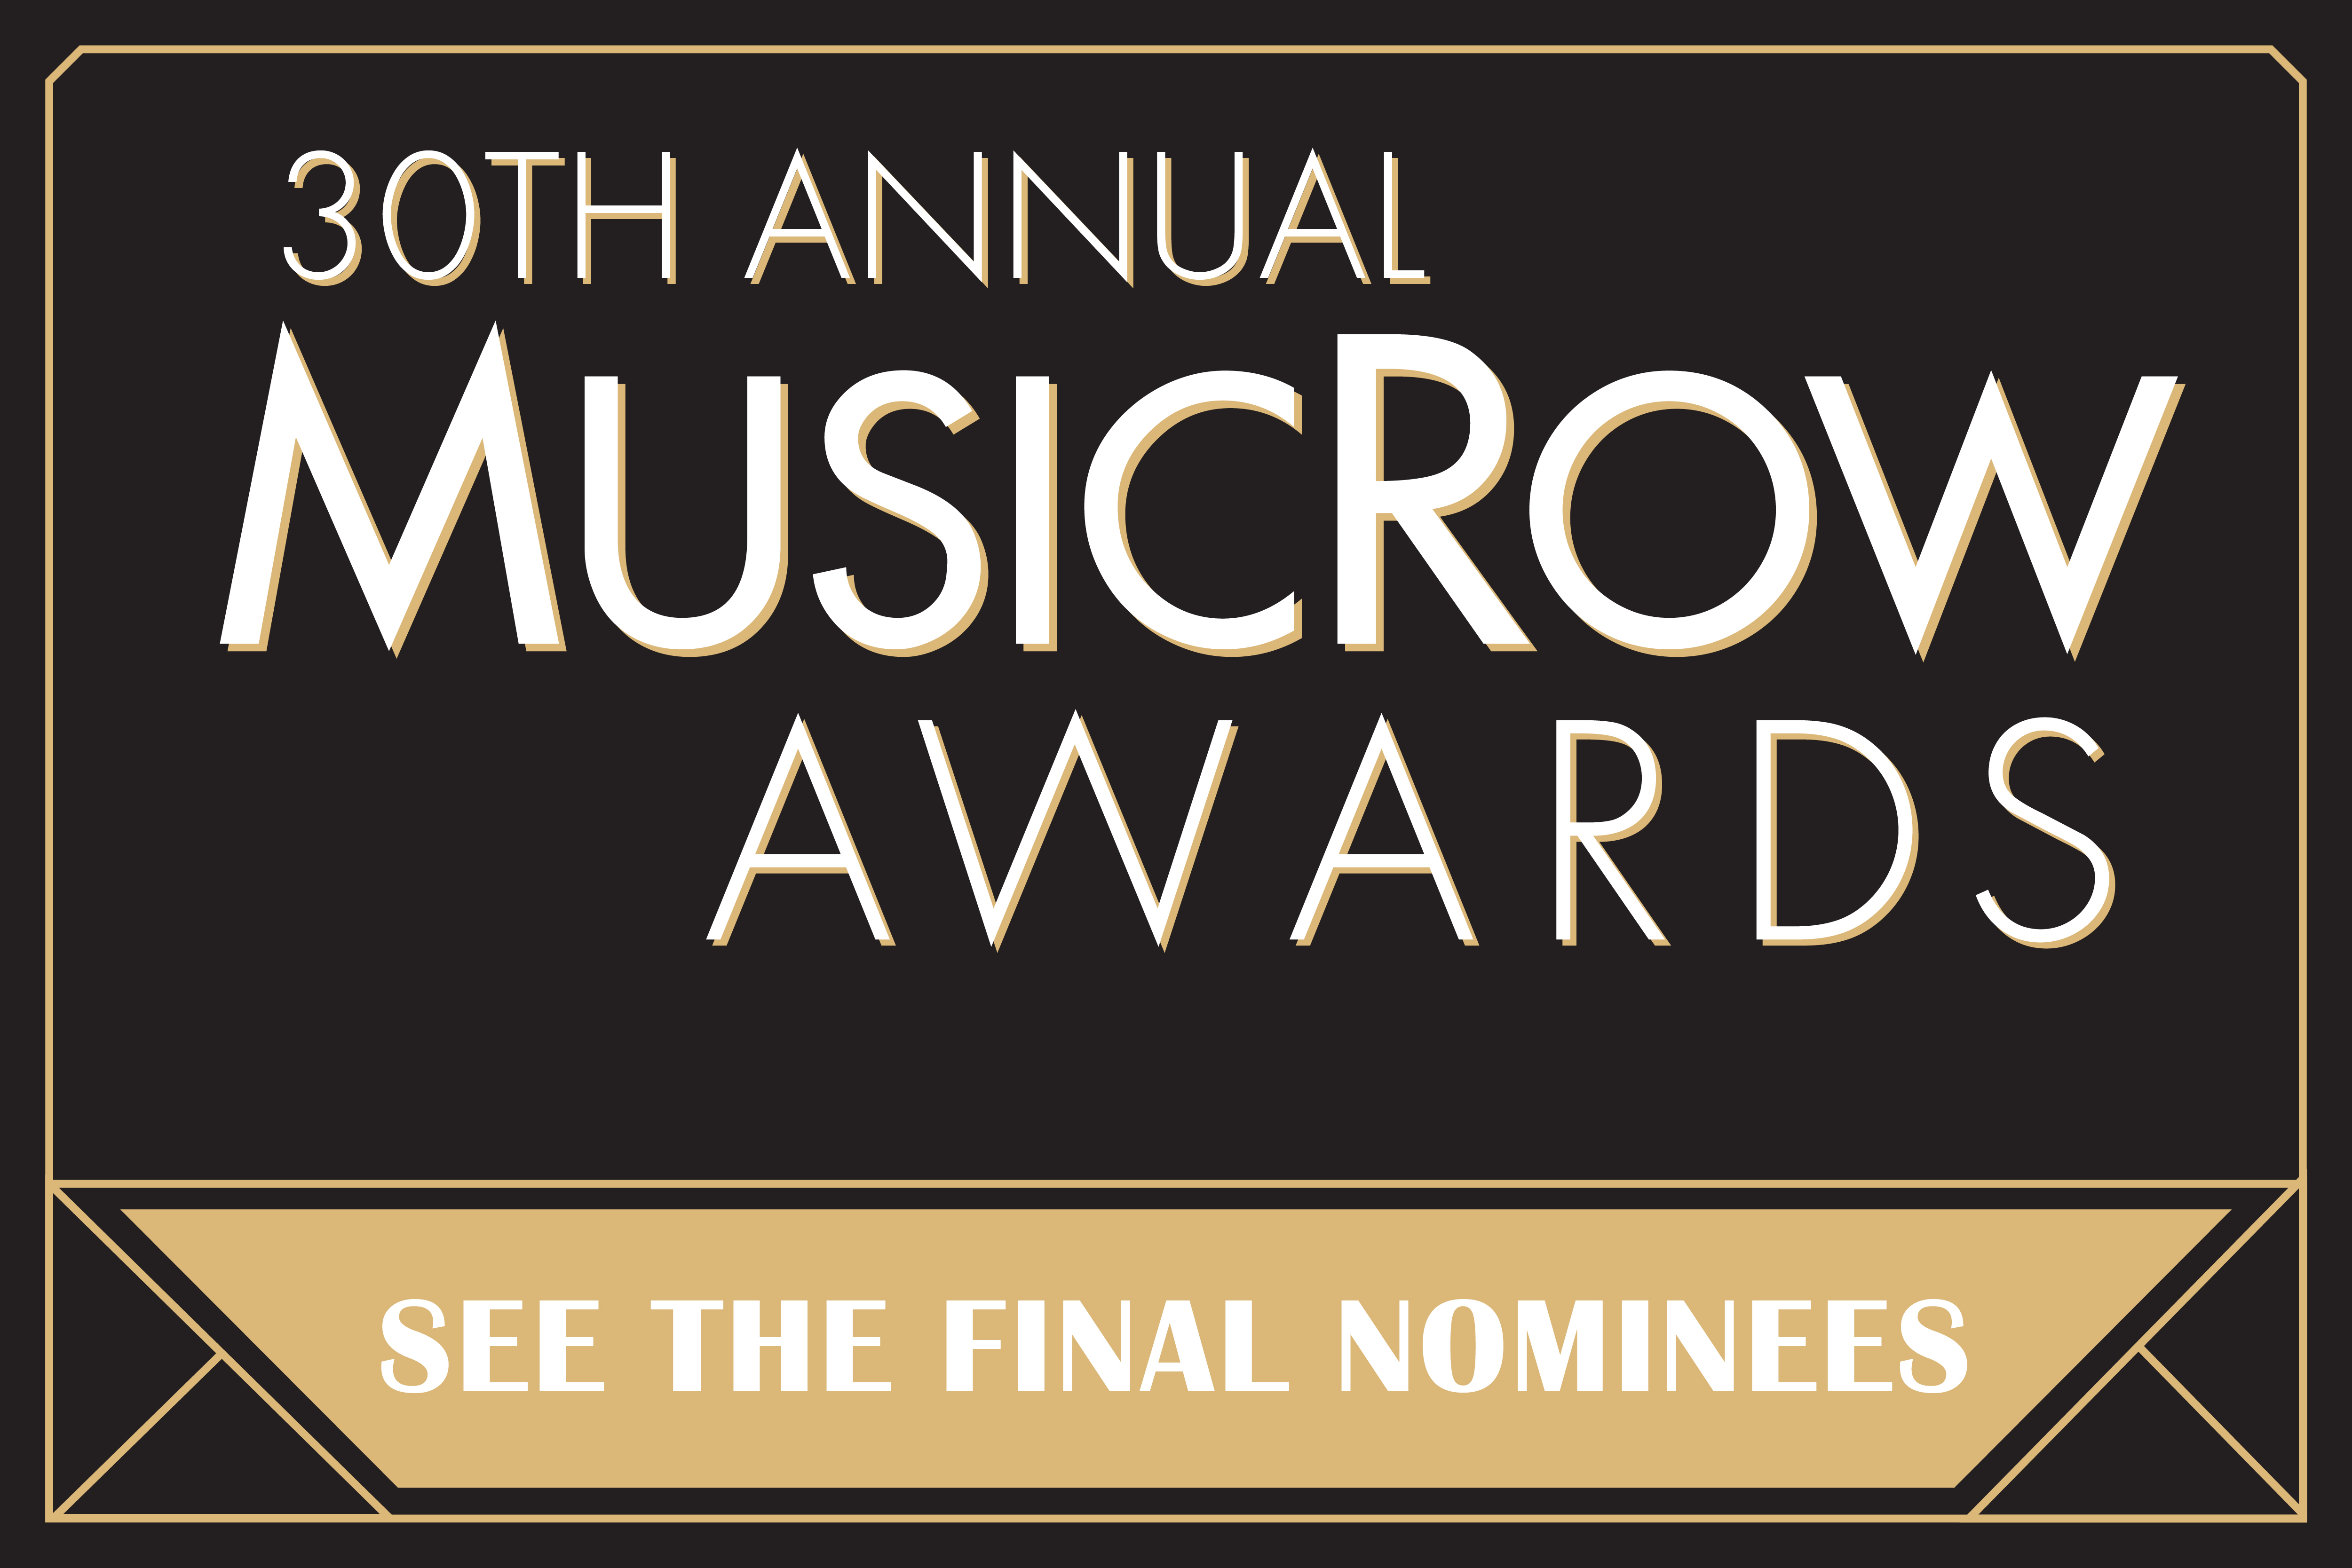 Nominees Revealed For 30th Annual MusicRow Awards